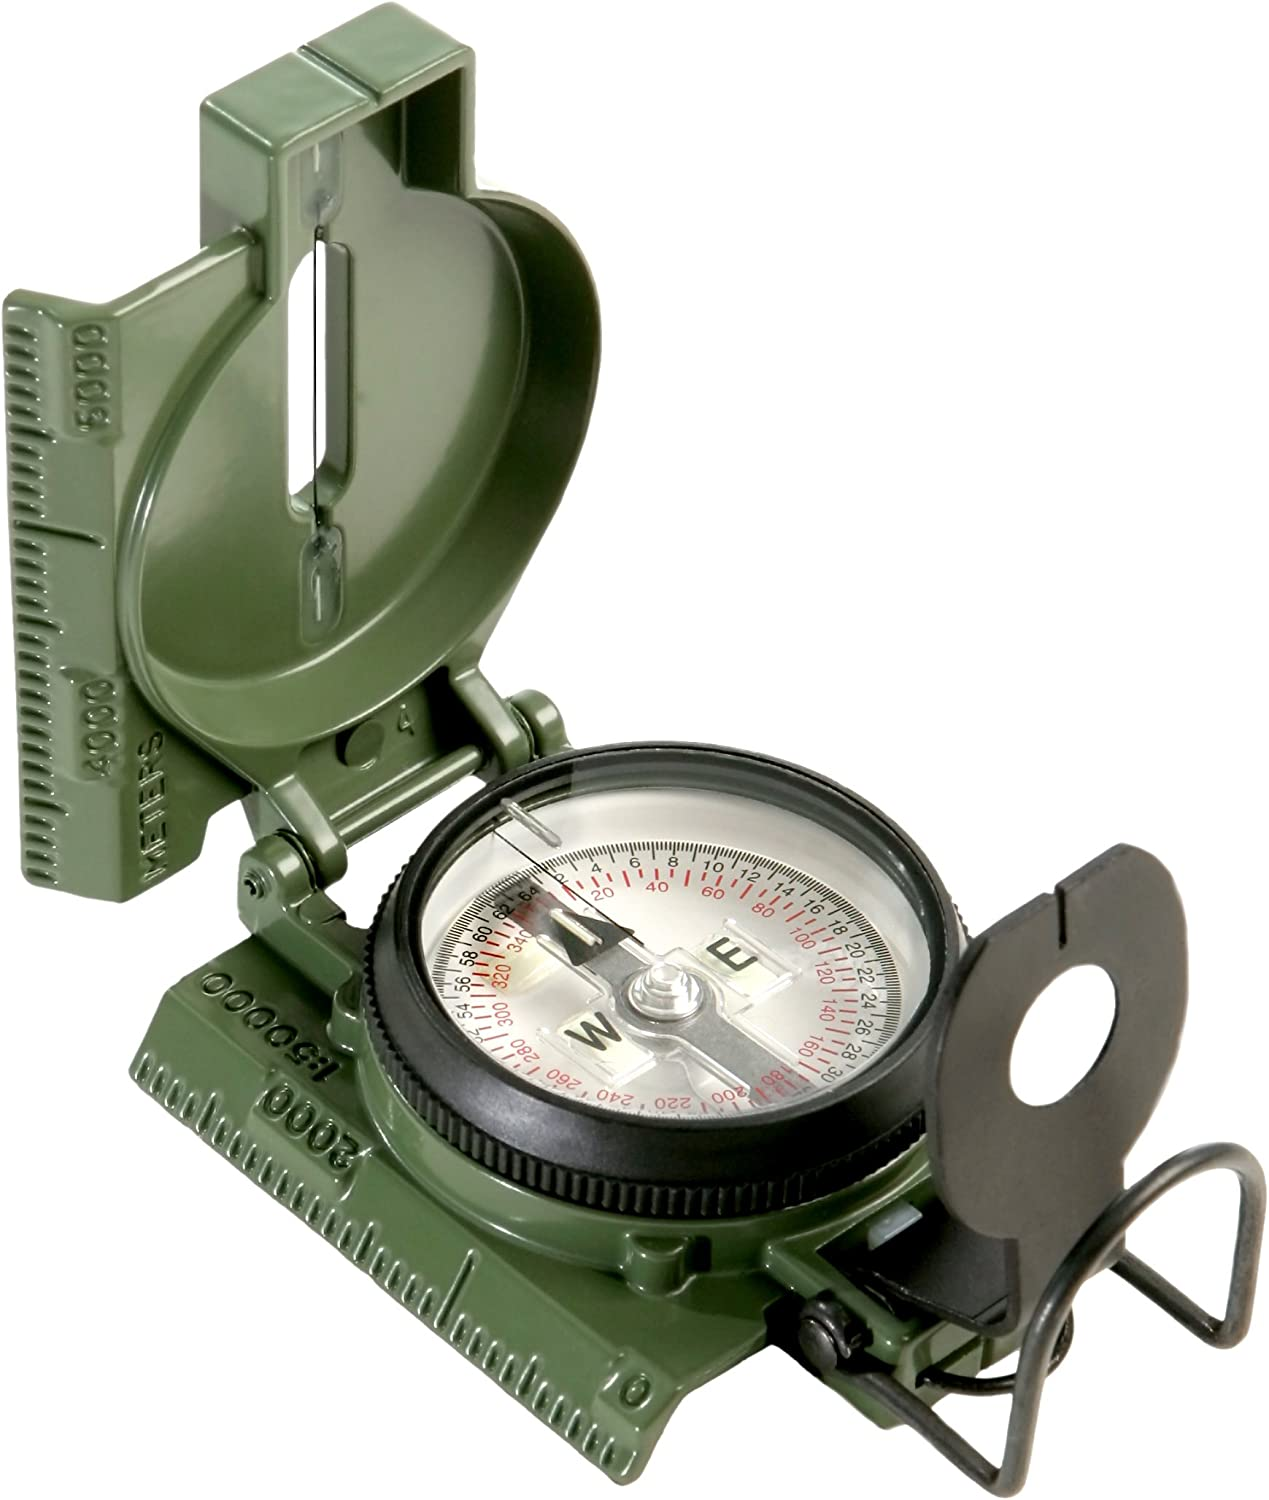 This is an image of the Camengga heavy-duty compass in green color, with cover, black-colored dials.